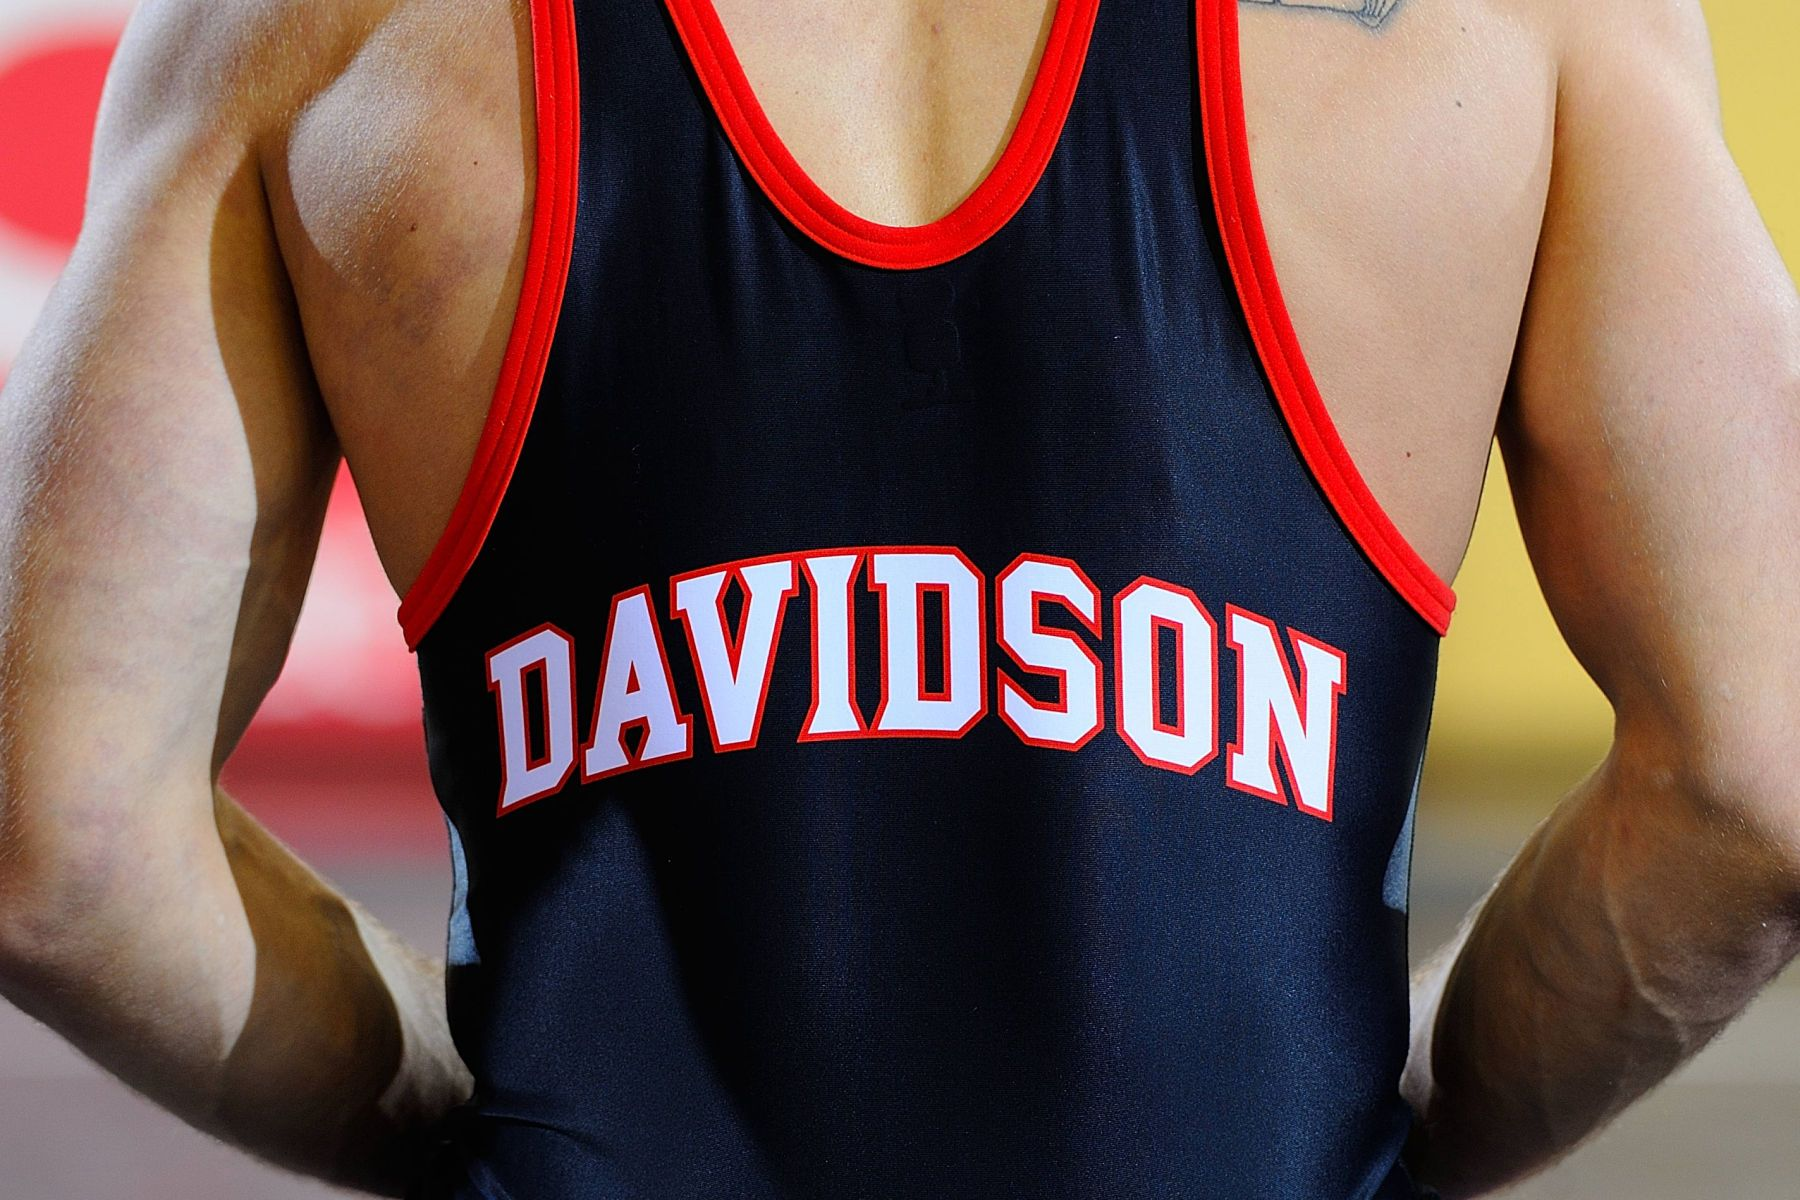 NCAA WRESTLING:  NOV 15 - Ohio State at Davidson